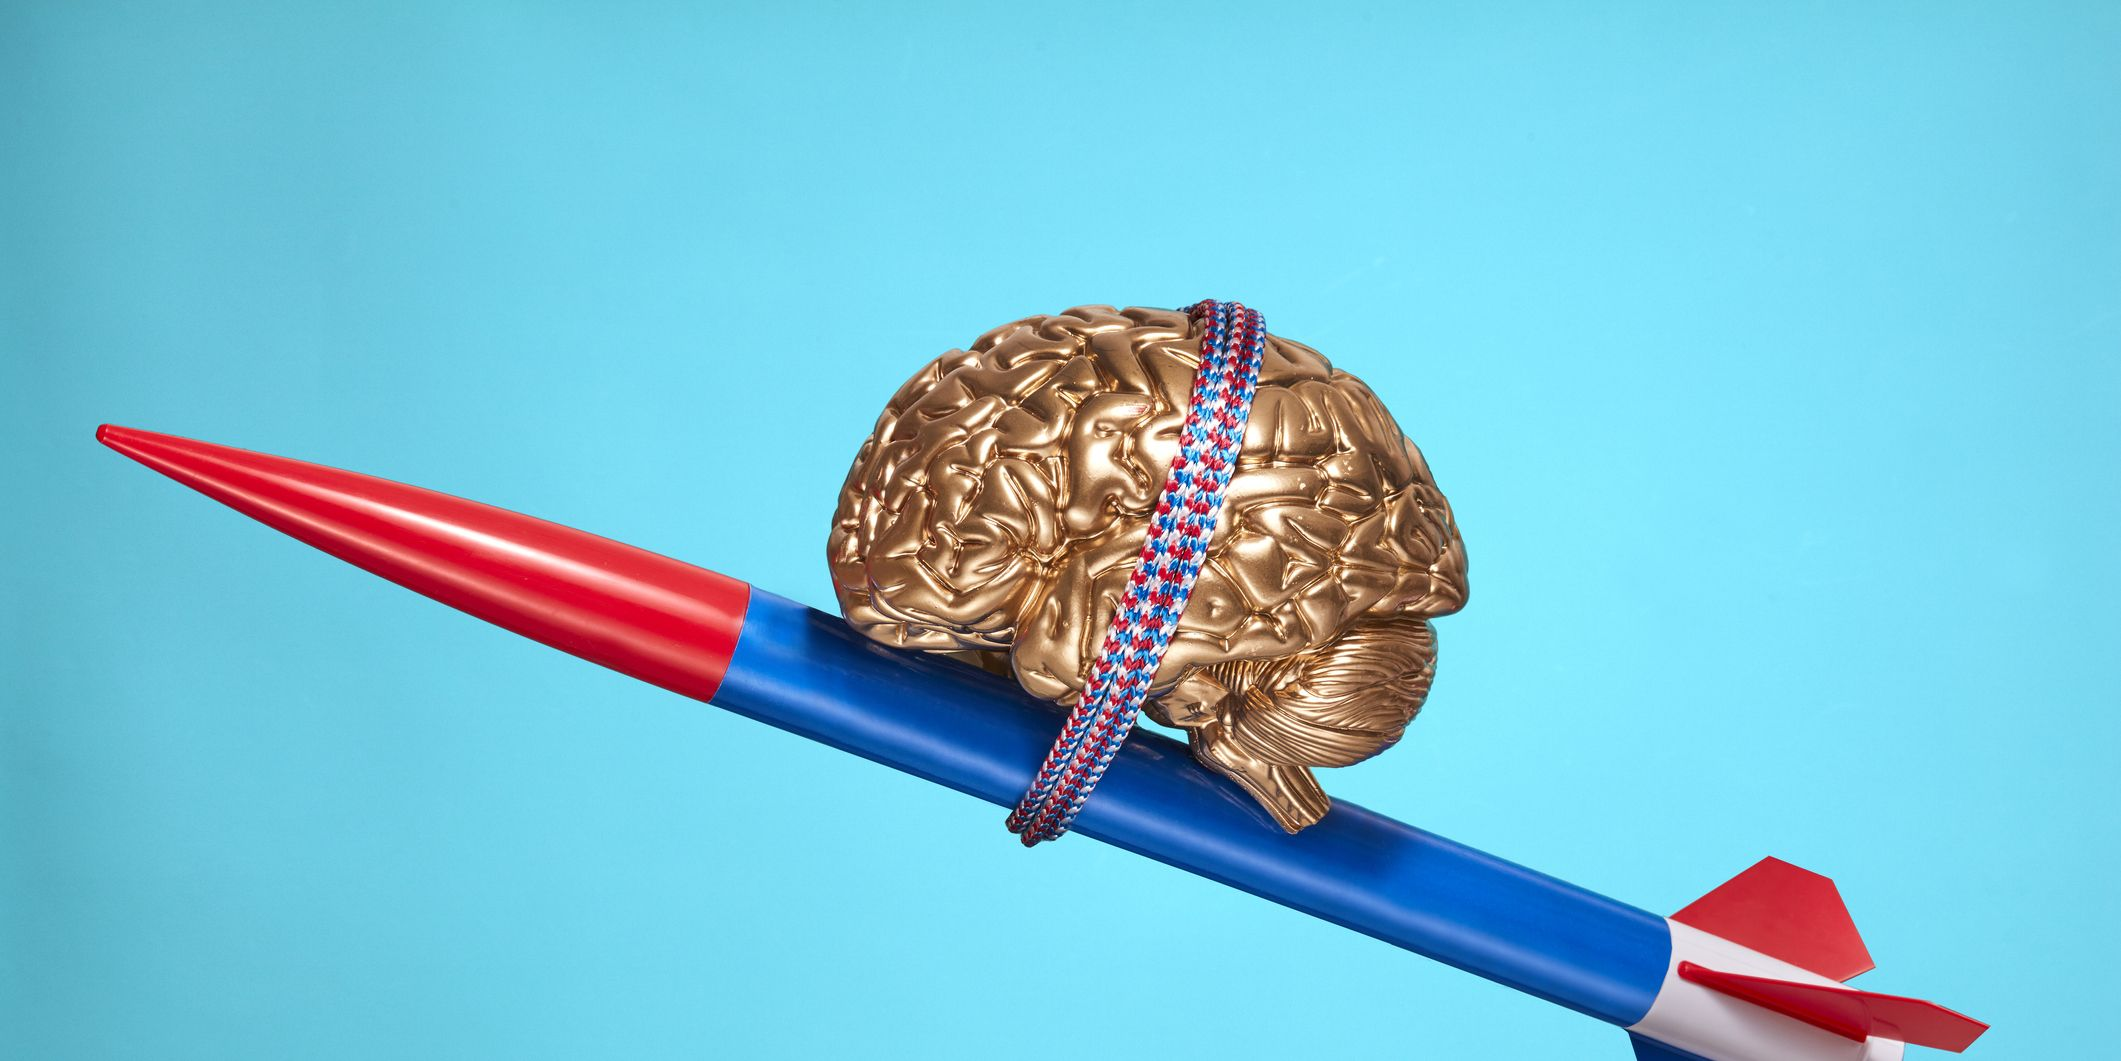 Golden Brain Strapped to a Rocket